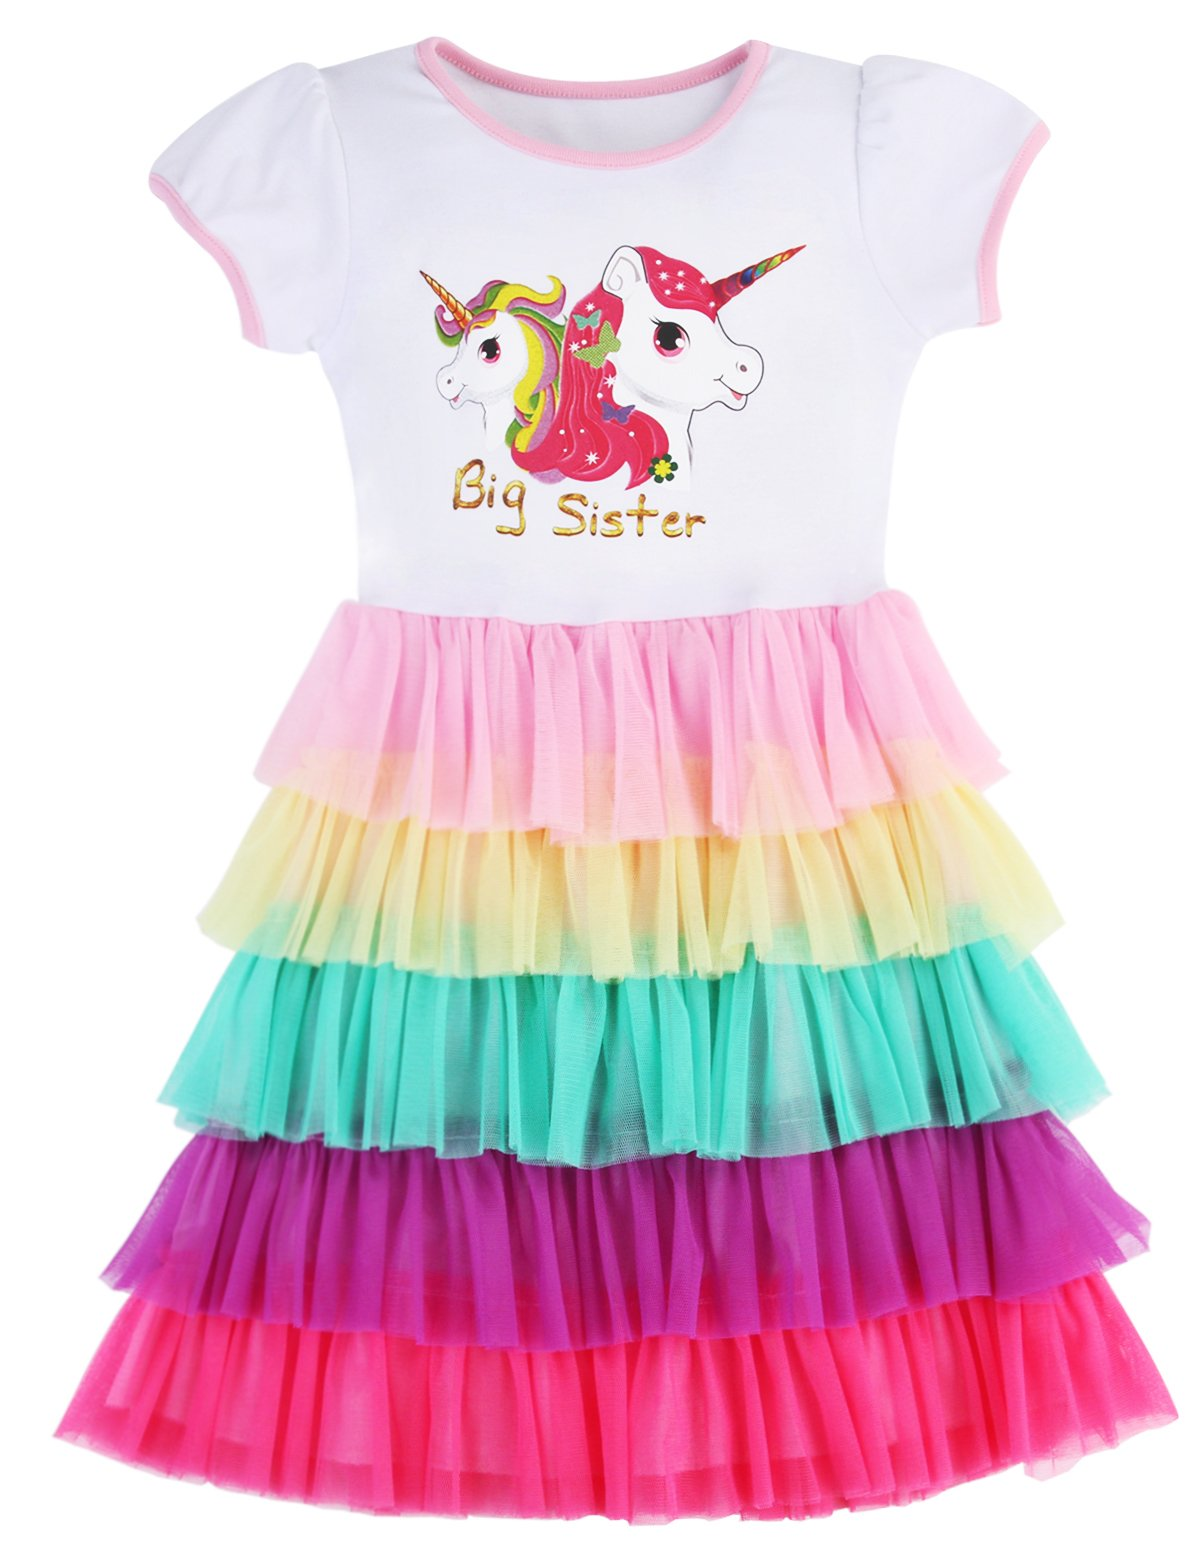 PrinceSasa Girls Clothes Size 5 Dresses Cupcake Tutus Dress,Big Sister,5-6 Years(Size 130)